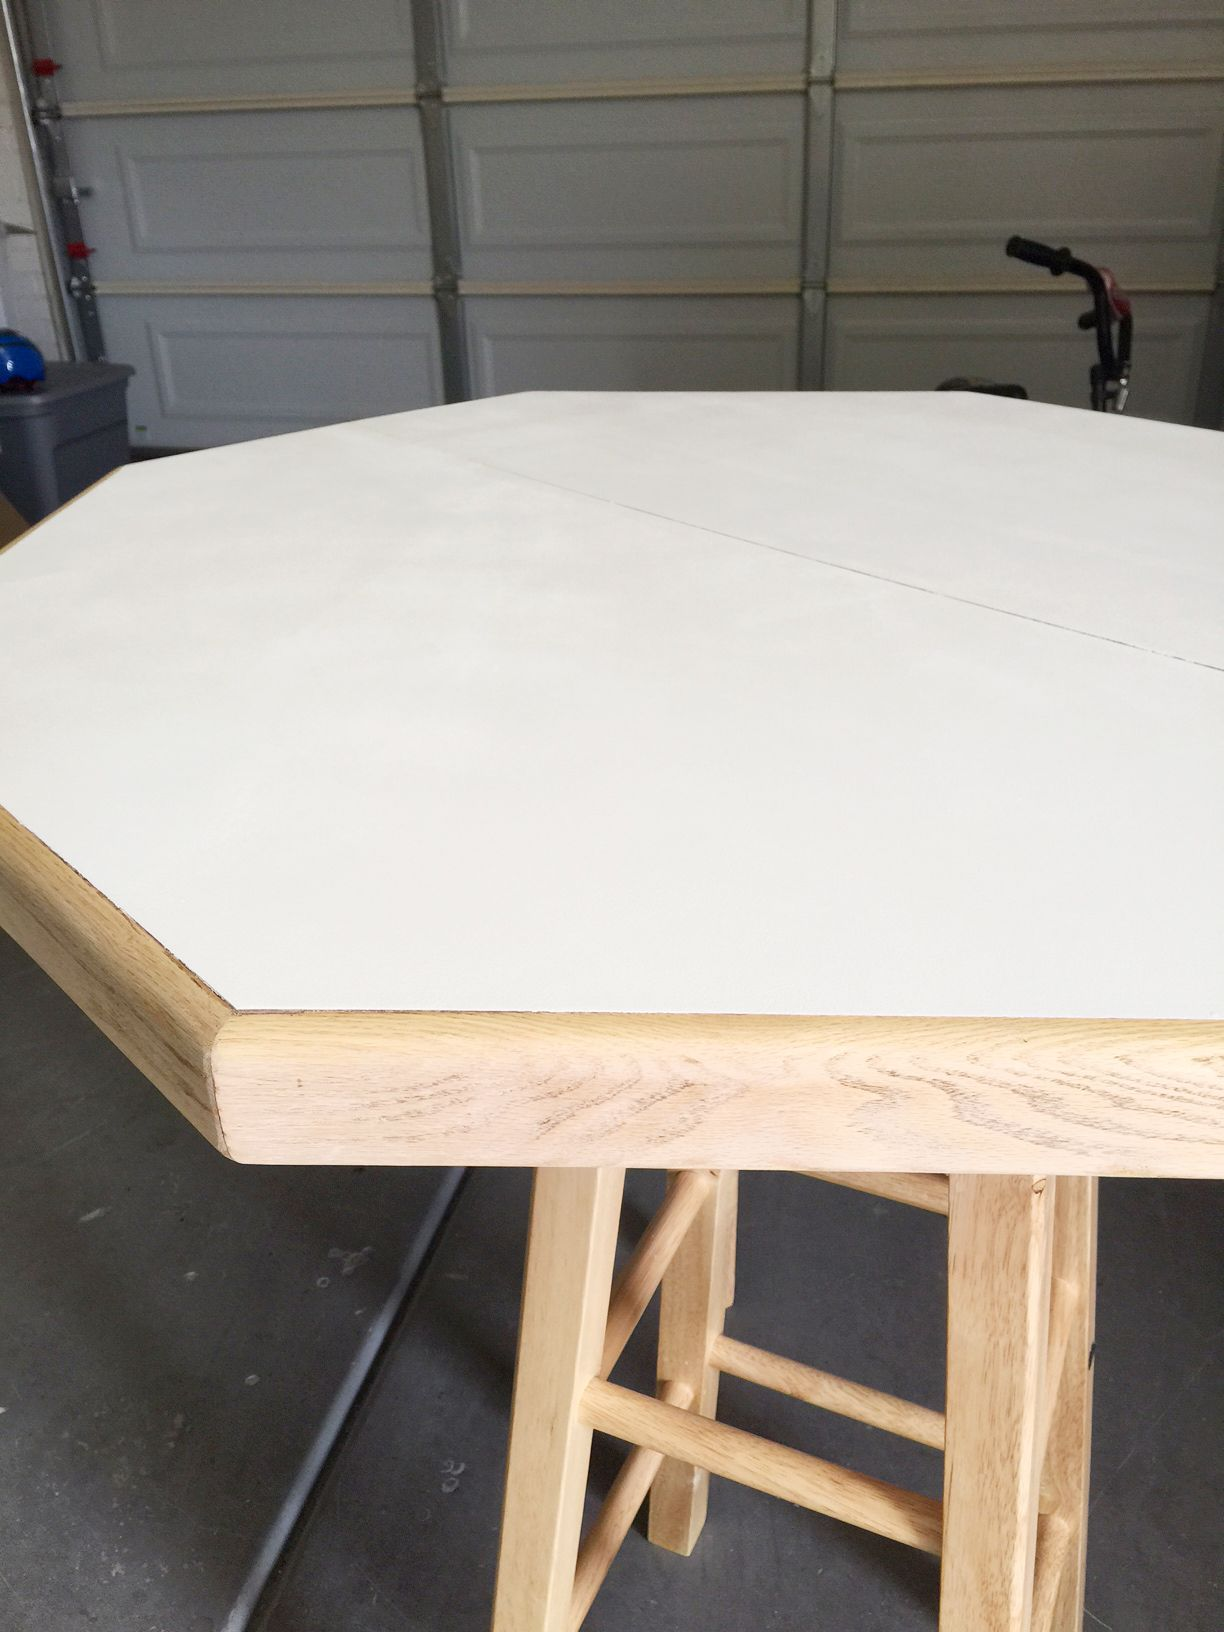 Laminat Streichen Easy Diy Octagon Table And How To Paint Laminate Blogger Home